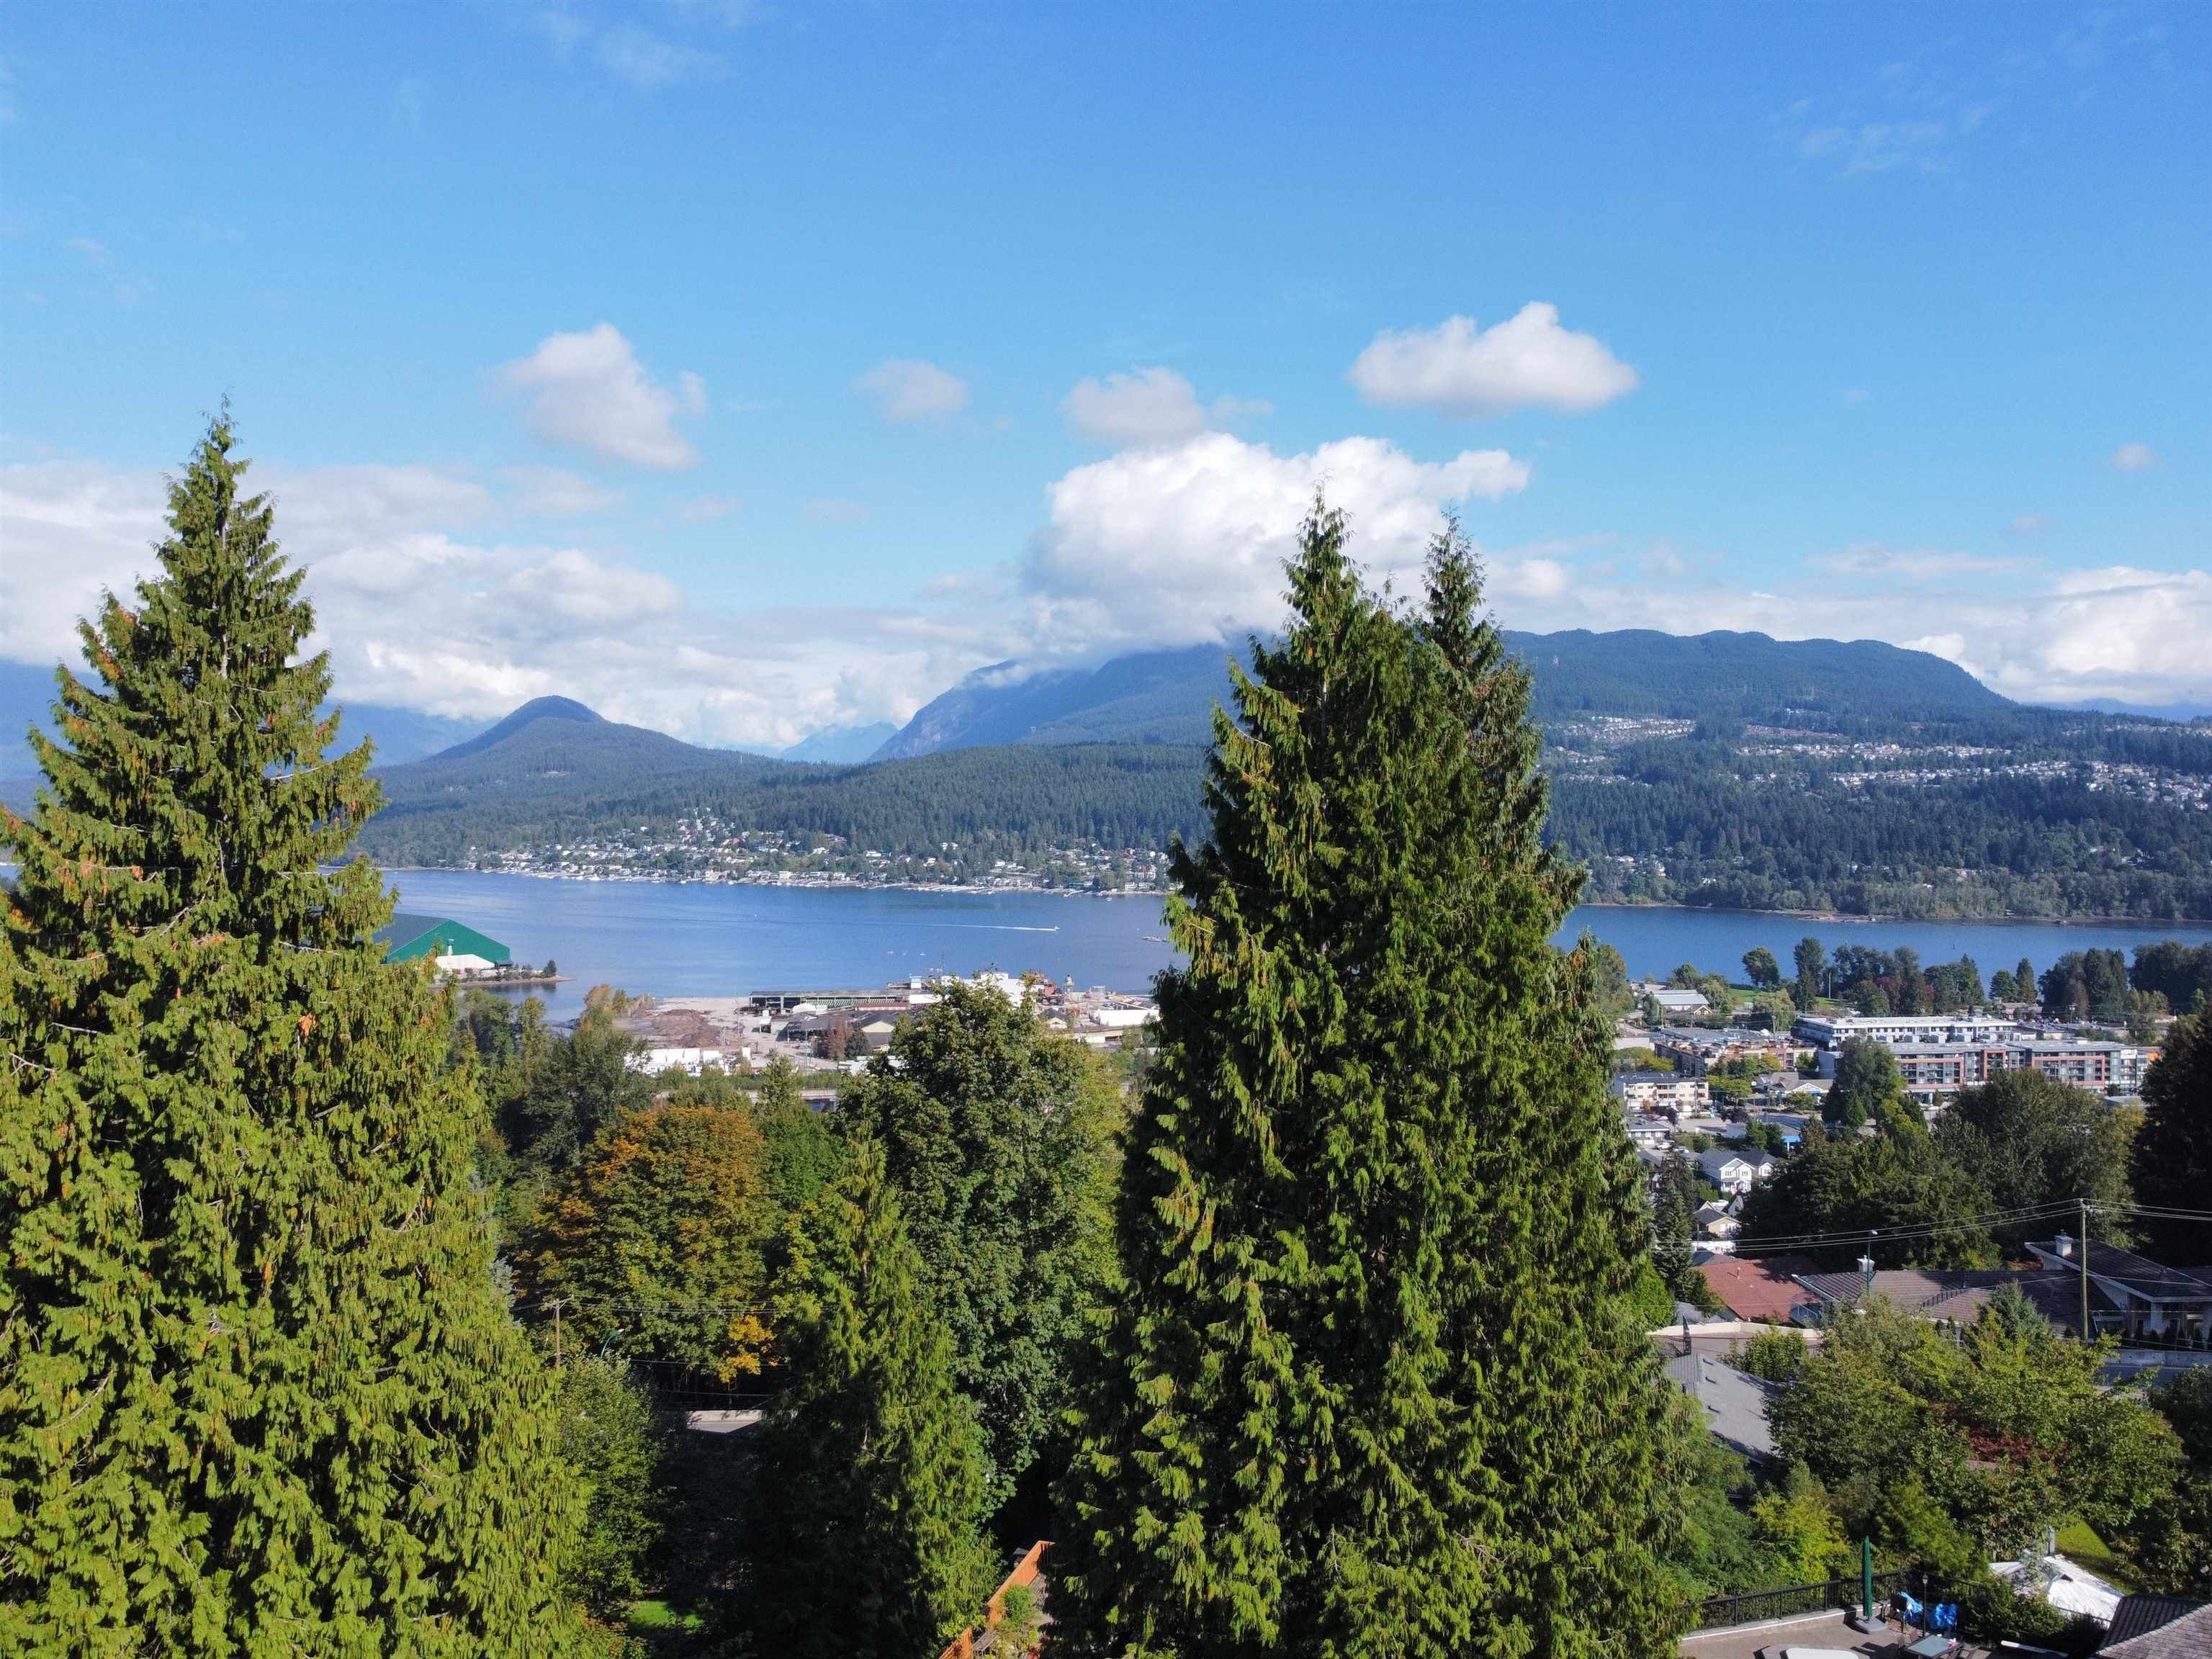 Main Photo: 1034 GATENSBURY Road in Port Moody: Port Moody Centre Land for sale : MLS®# R2620134